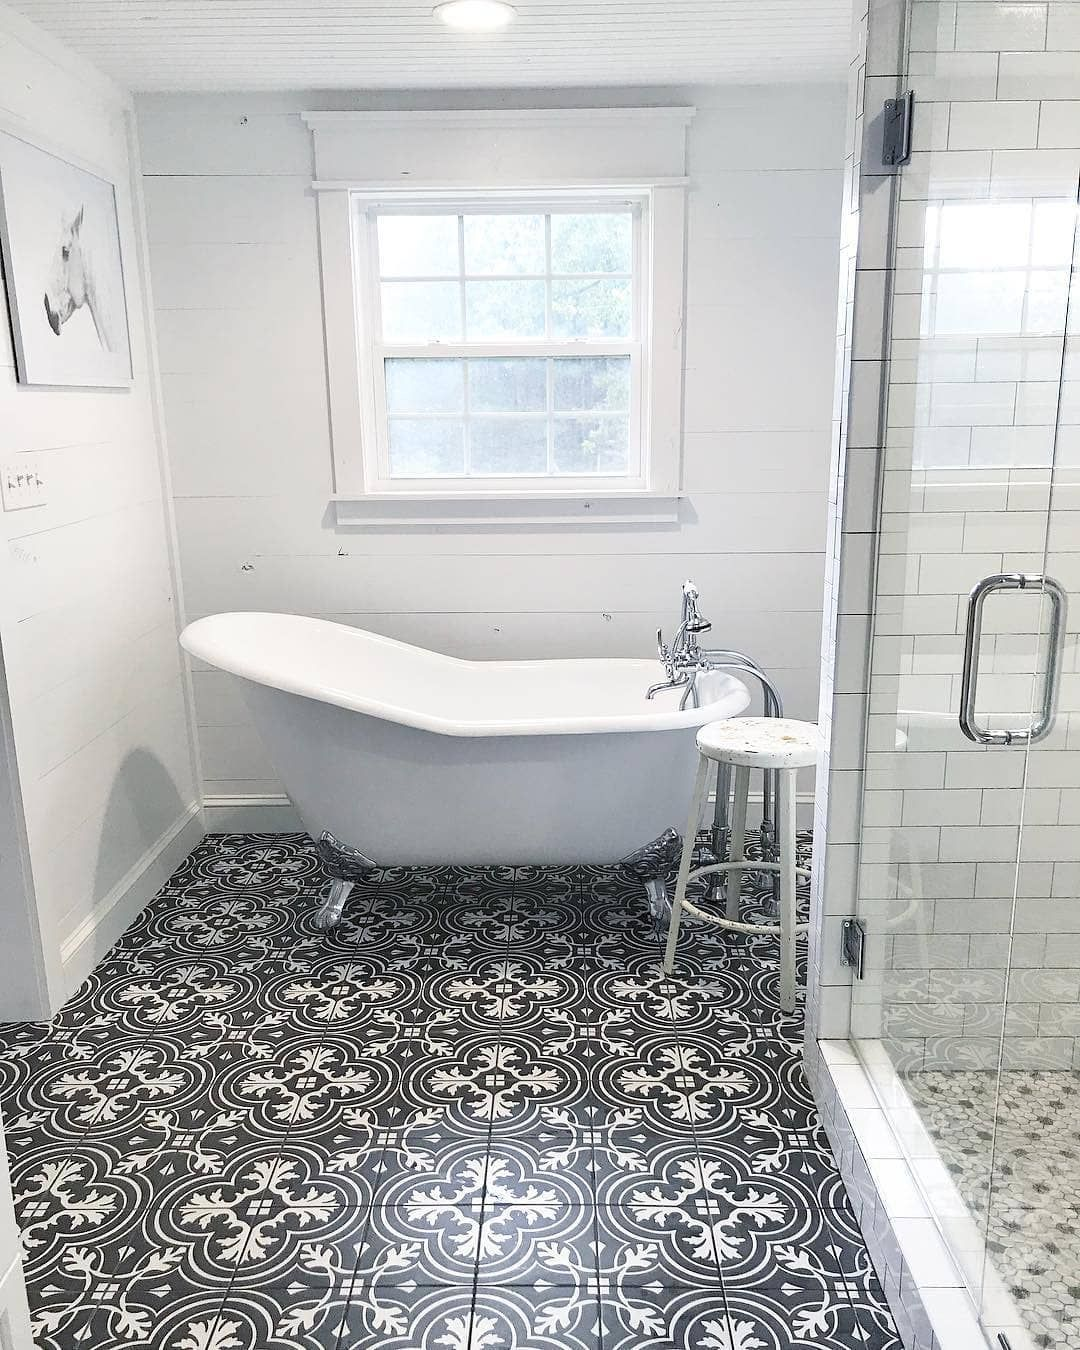 The Vintage Black And White Patterned Tile Adds An Extra Touch Of Character To This Beautiful Farmhouse B Black Bathroom Black Tile Bathrooms Bathroom Interior